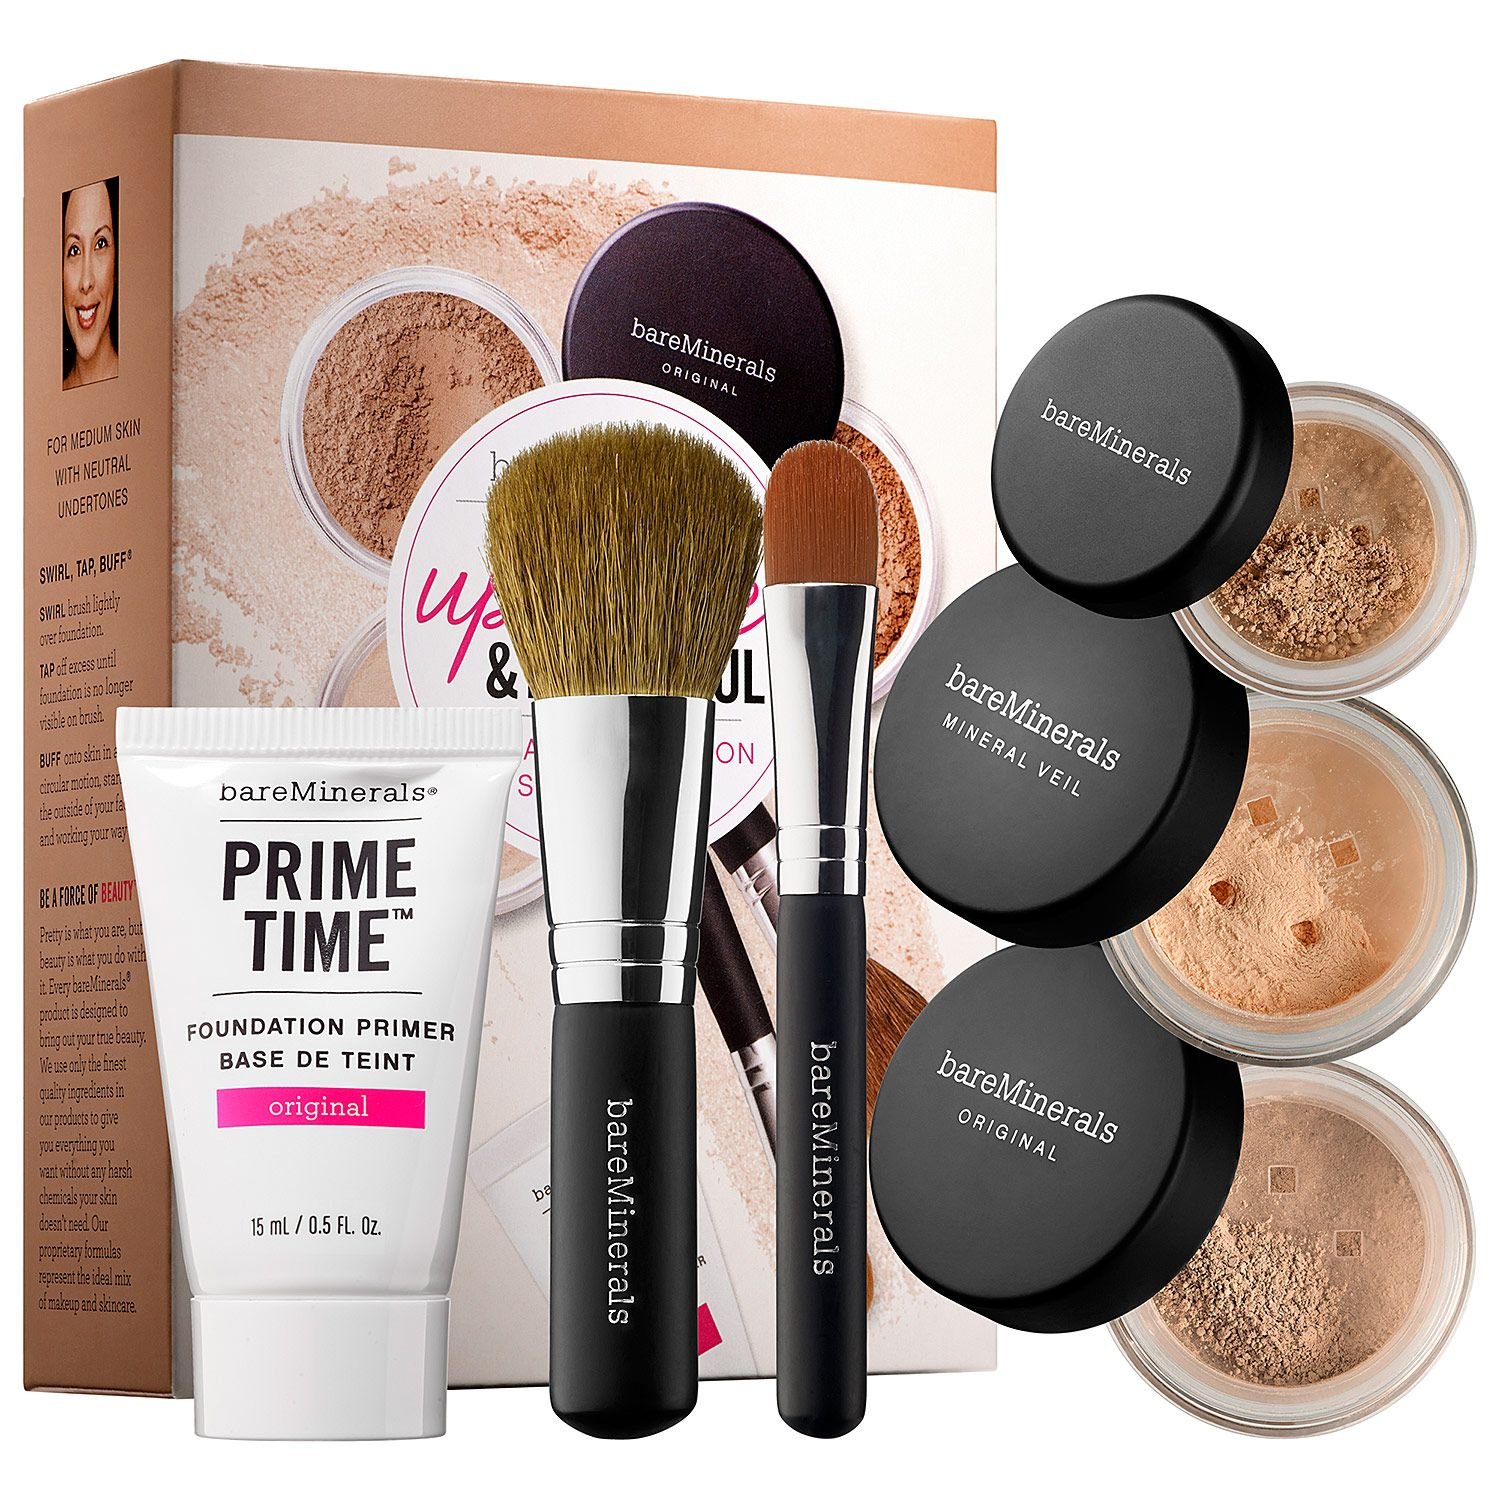 Up Close & Beautiful 30 Day Complexion Starter Kit